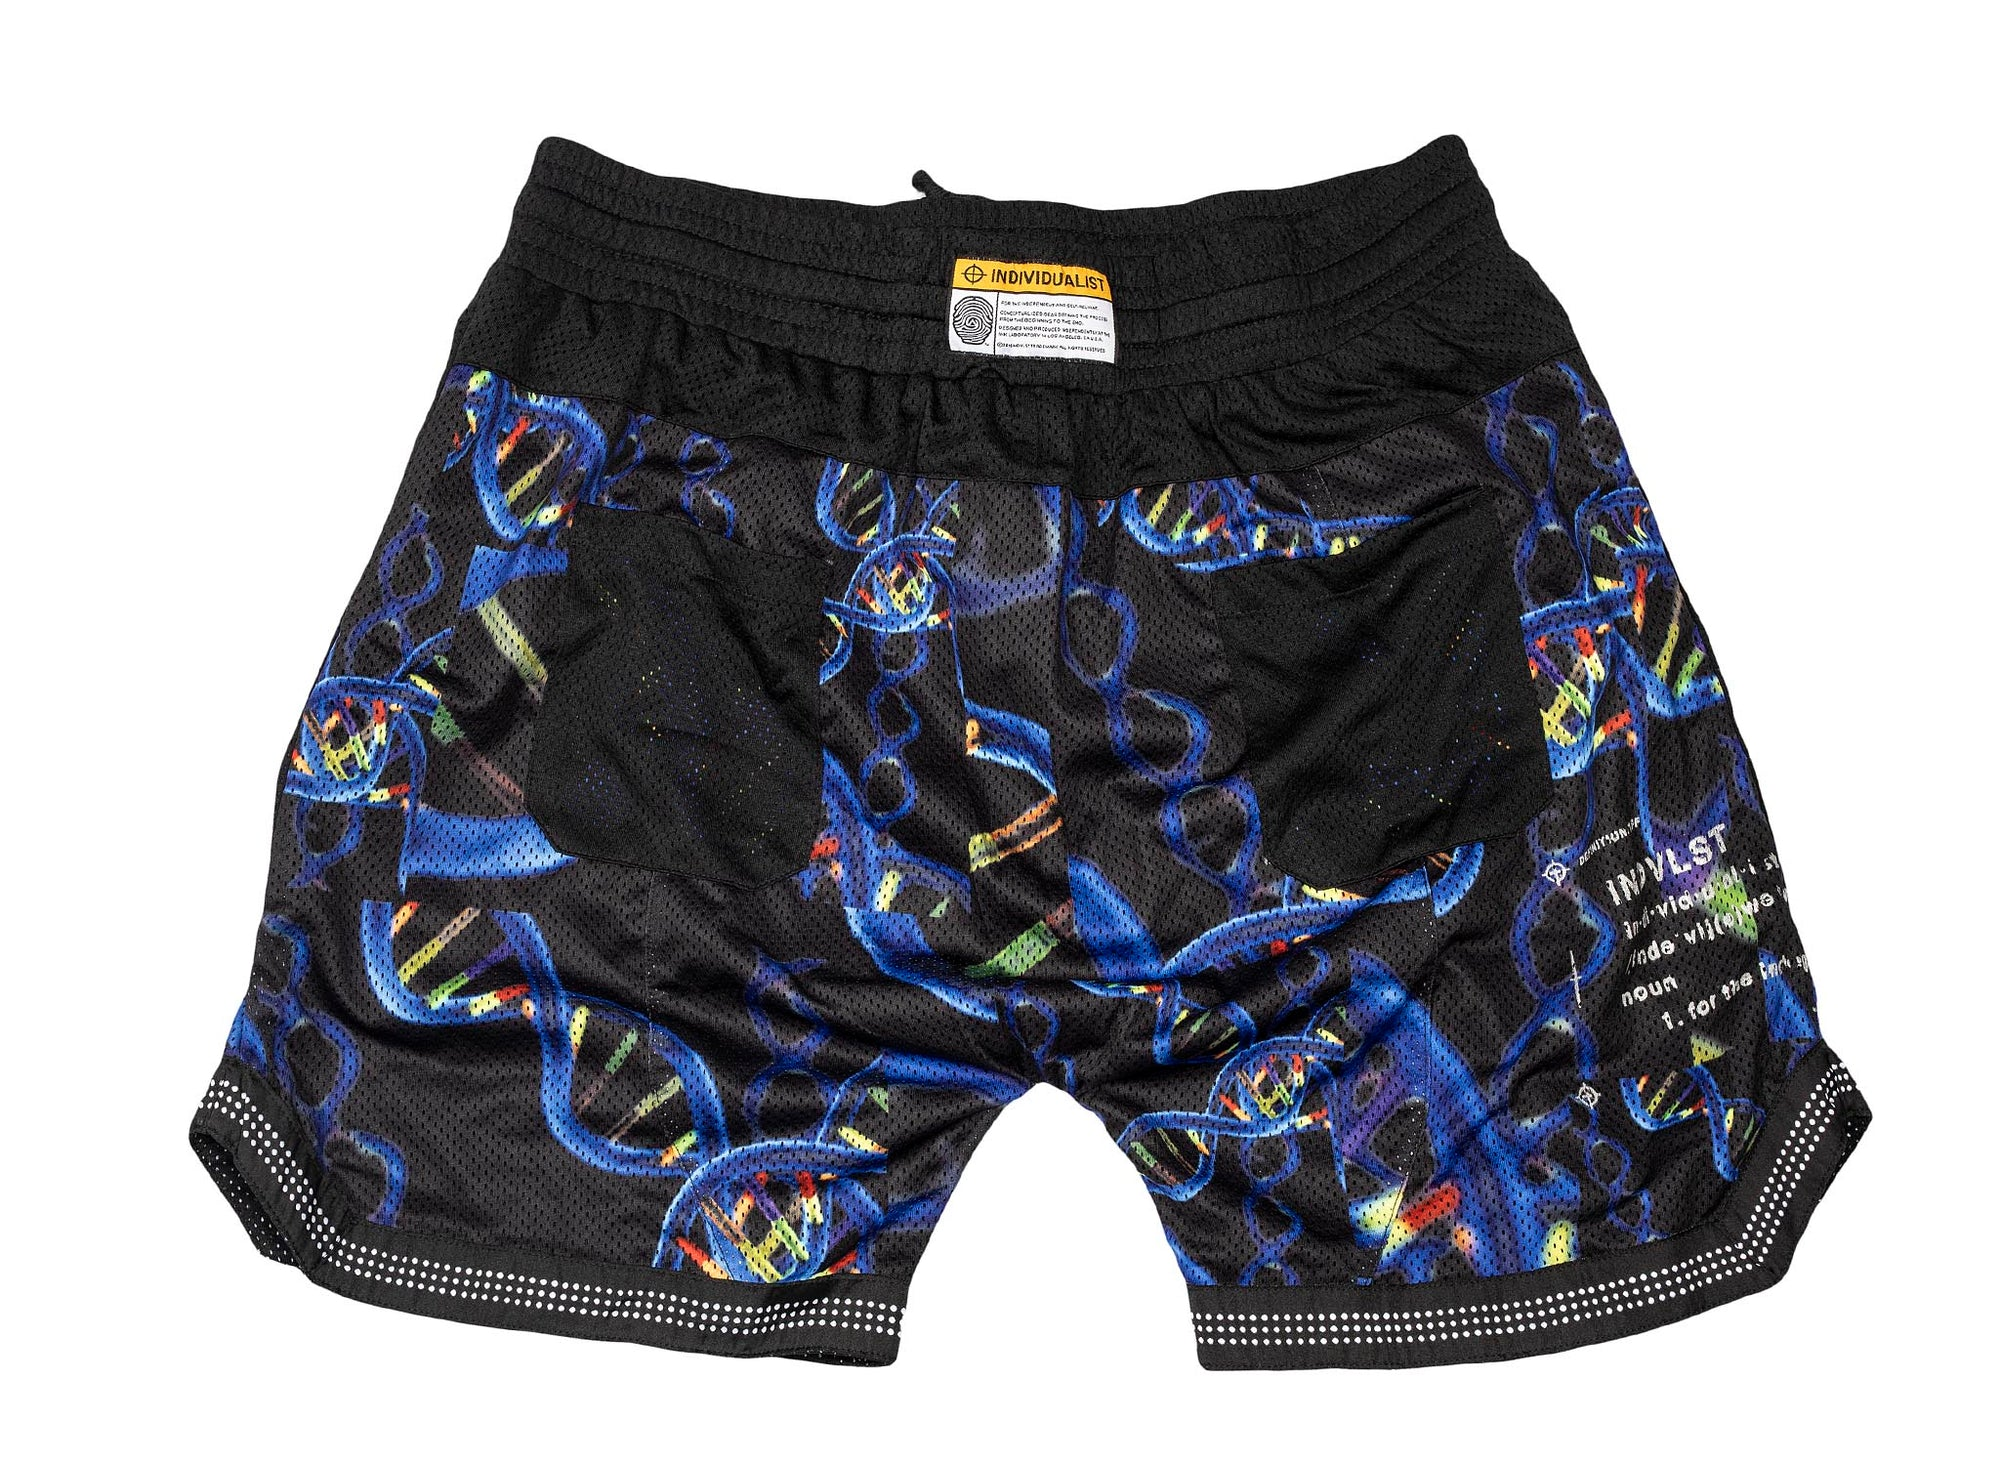 INDVLST DNA Men's Shorts 'Black'